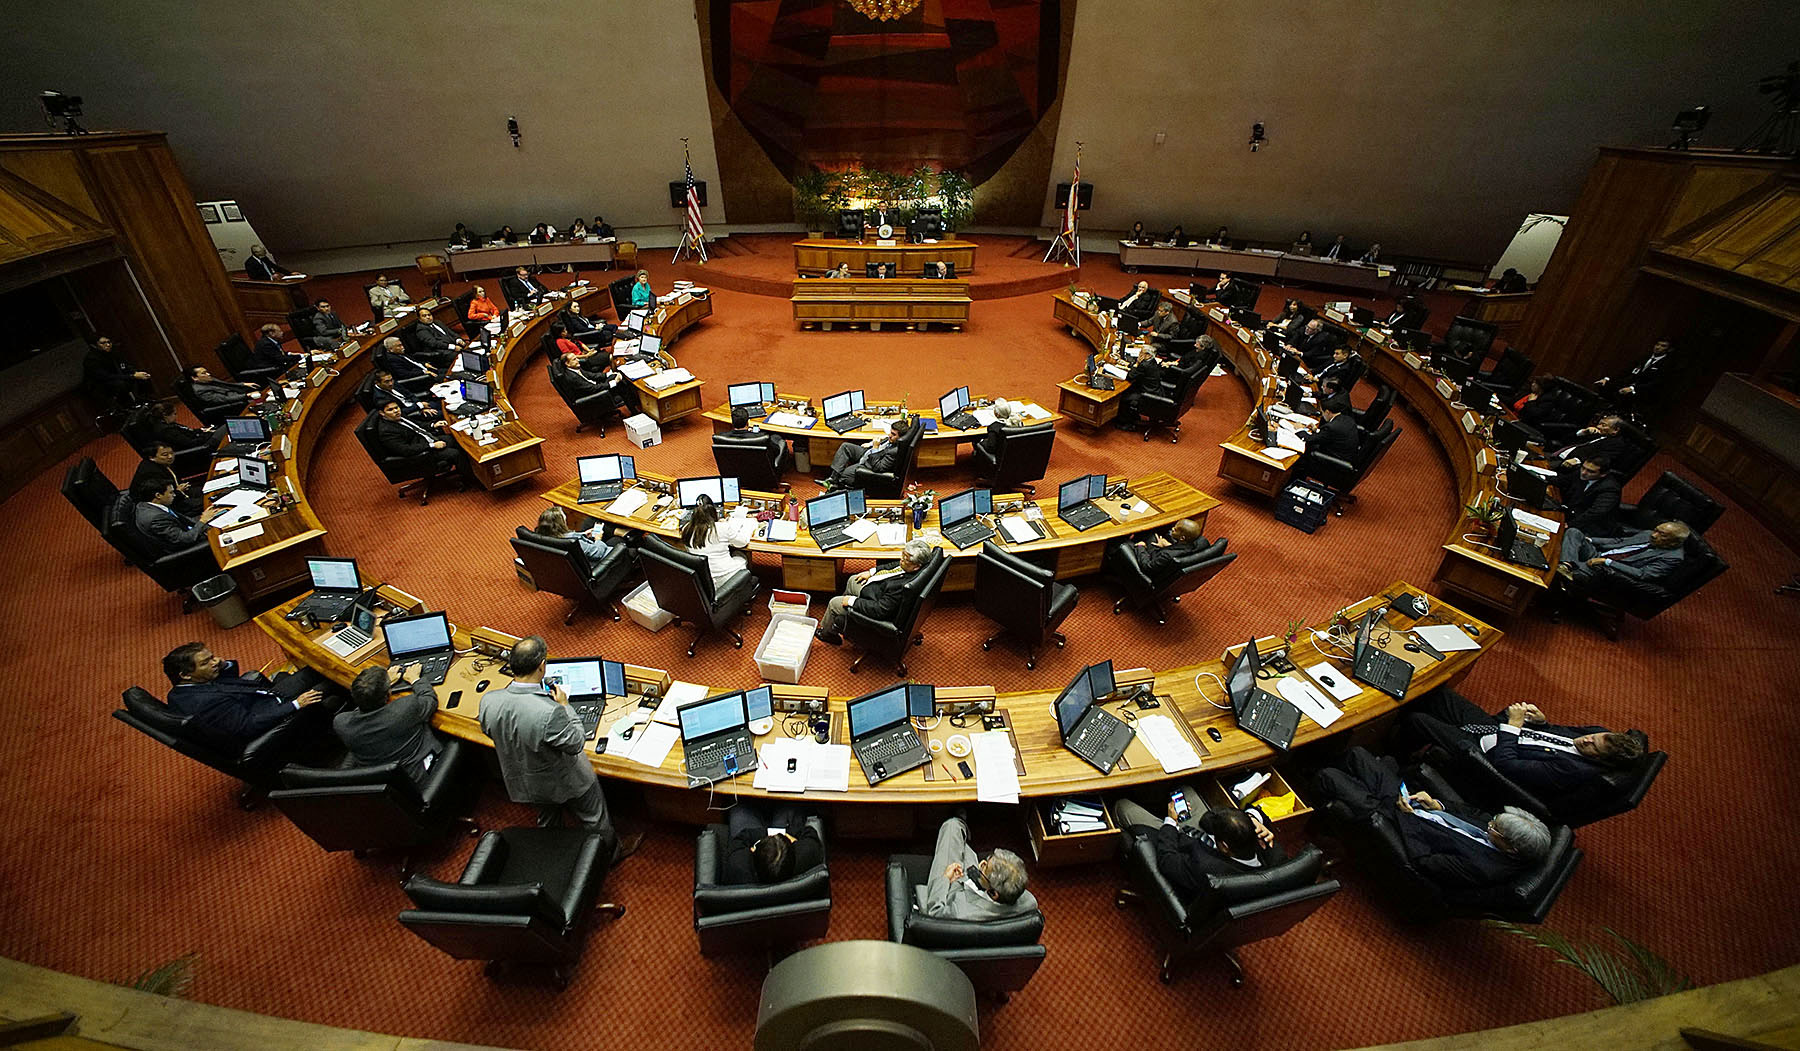 hawaii property tax bills with Hawaii Legislature Passes 26b Budget 100 Renewable Energy Goal on Iphone 6 Plus  parison moreover Hawaii General Excise And Use Tax moreover bined Cycle Power Plant Operation furthermore Louisiana Among States Lowest Property Taxes moreover V And T Phone With Person.